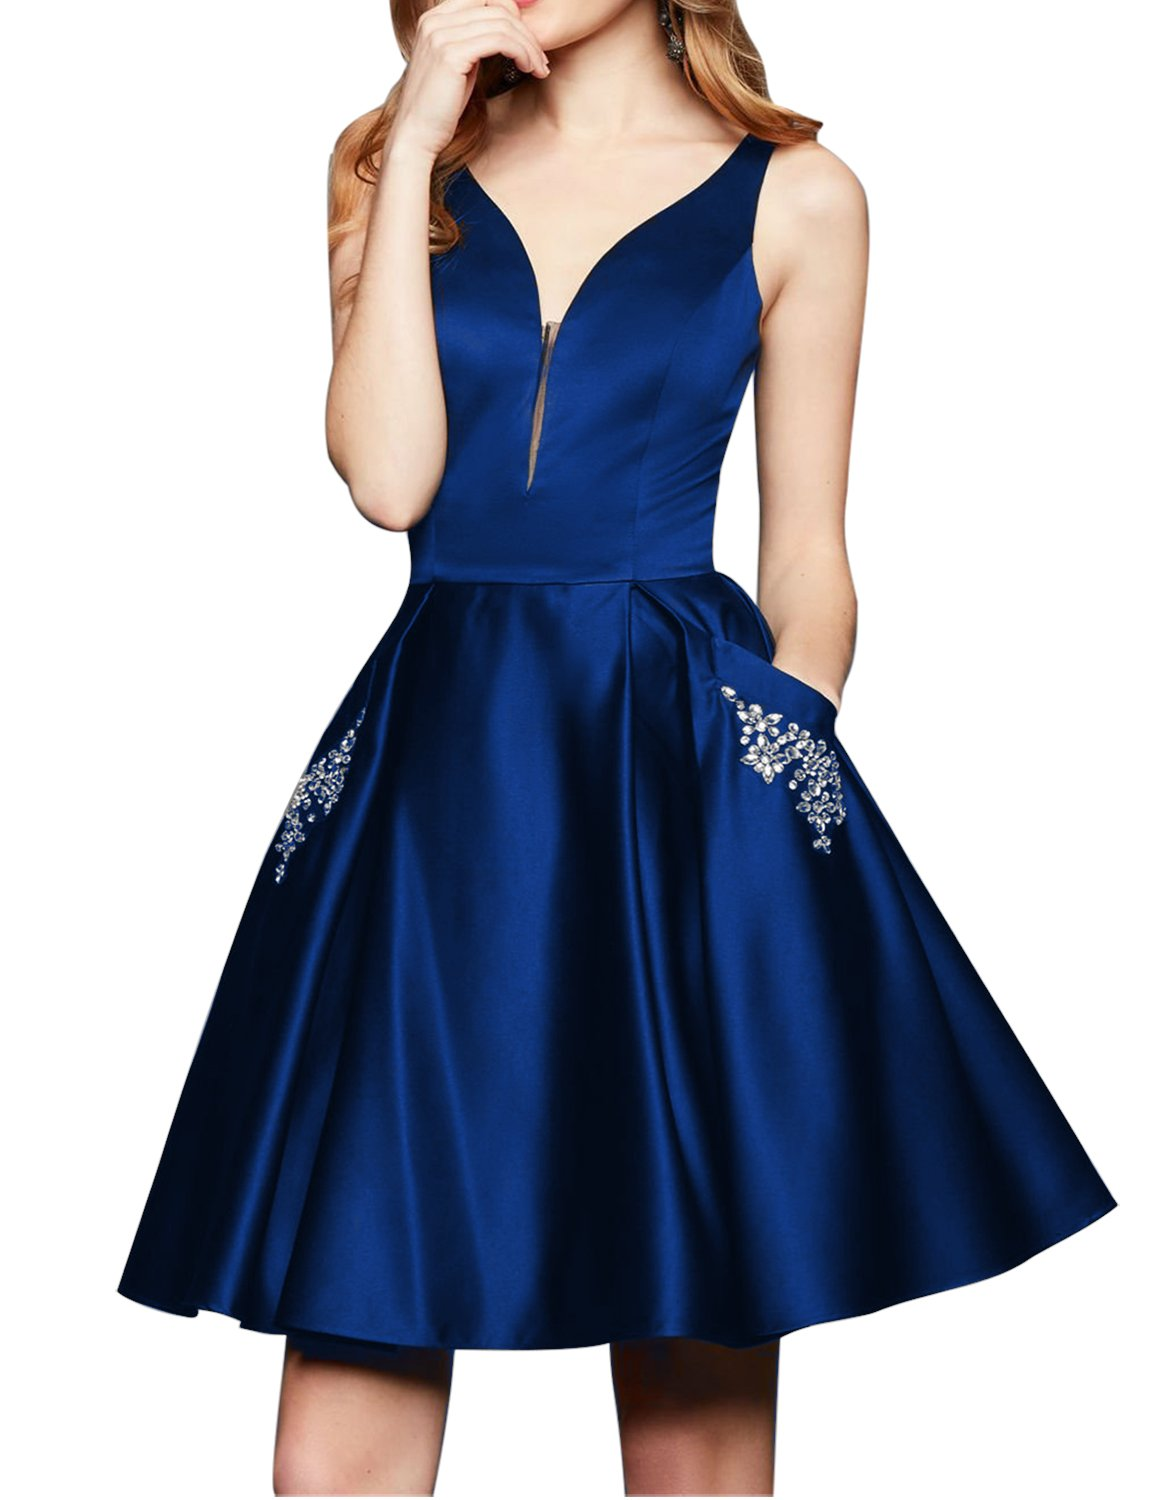 HONGFUYU V-Neck Homecoming Dresses Satin with Beaded Pockets Short Cocktail Prom Dresses HFY216-Royal Blue-US4